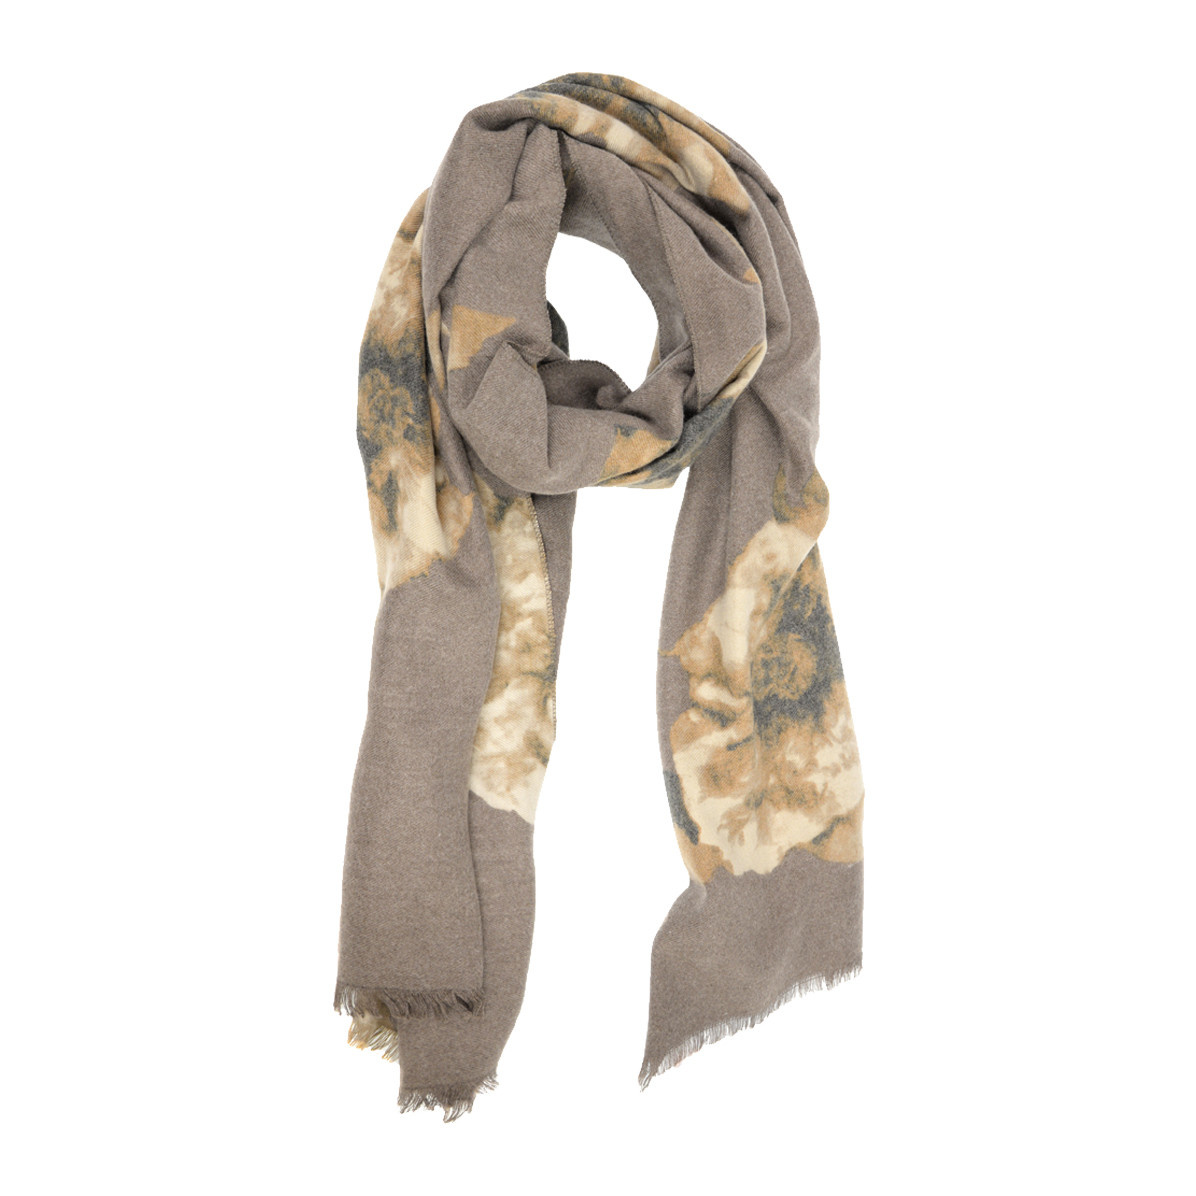 Joy Susan Joy Susan Luxurious Bloom Scarf Neutral